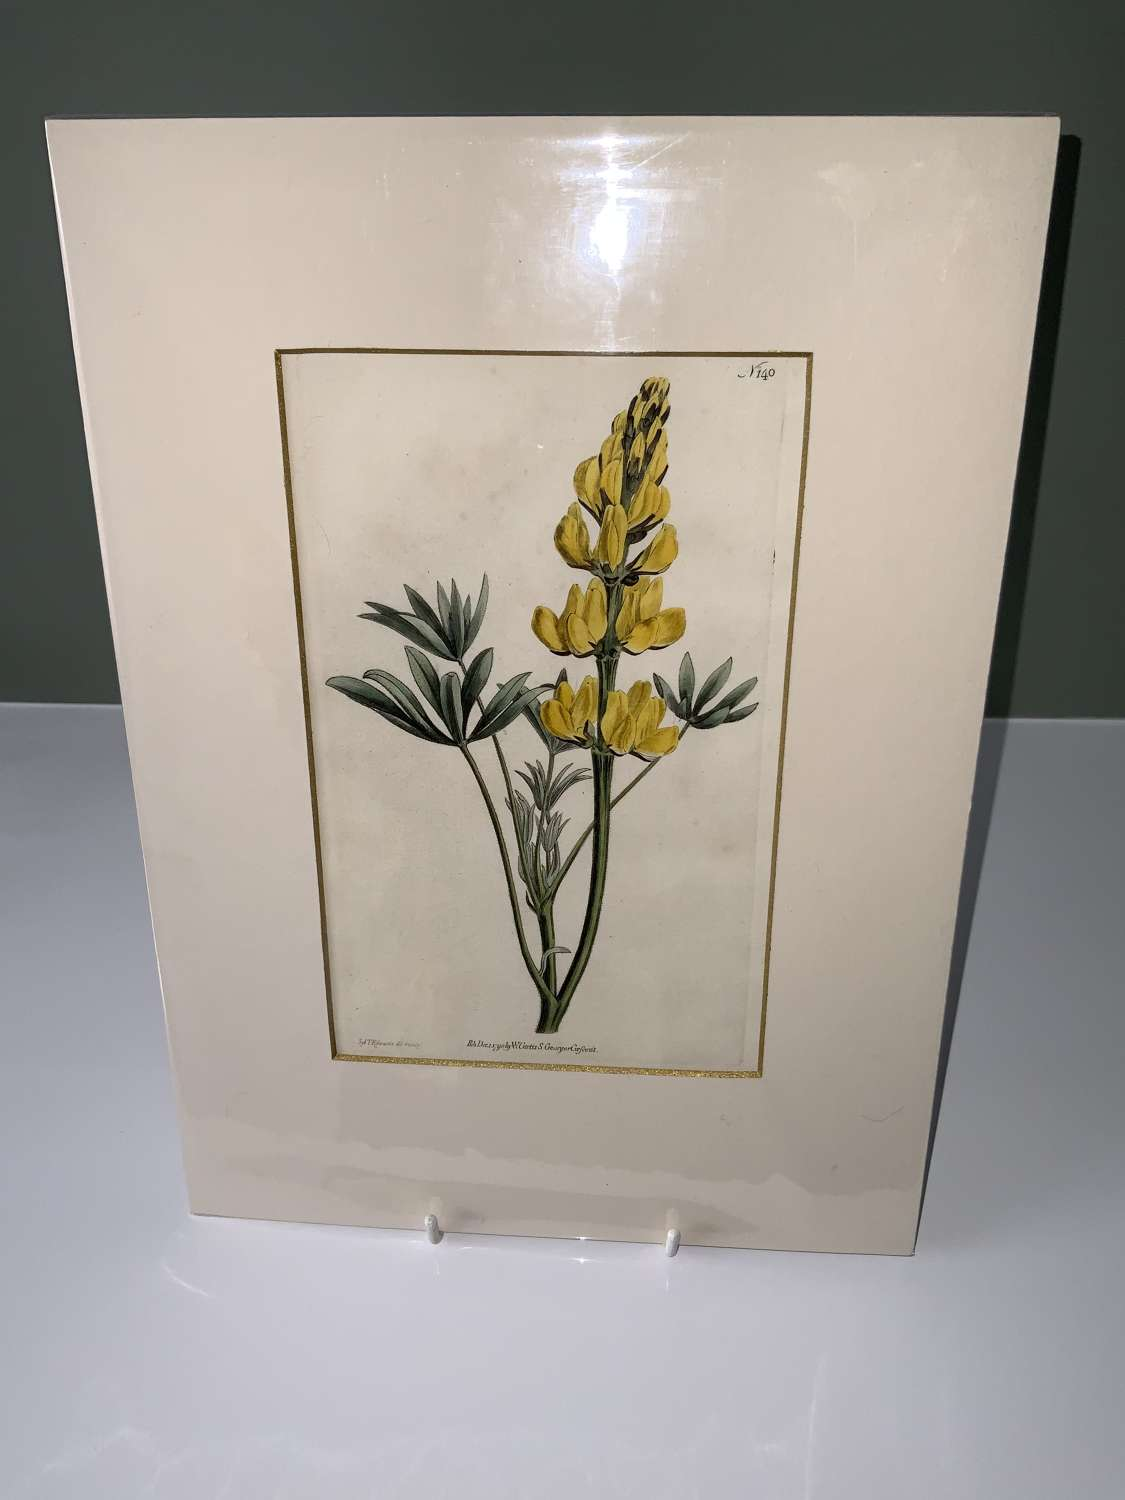 19th Century Botanical prints